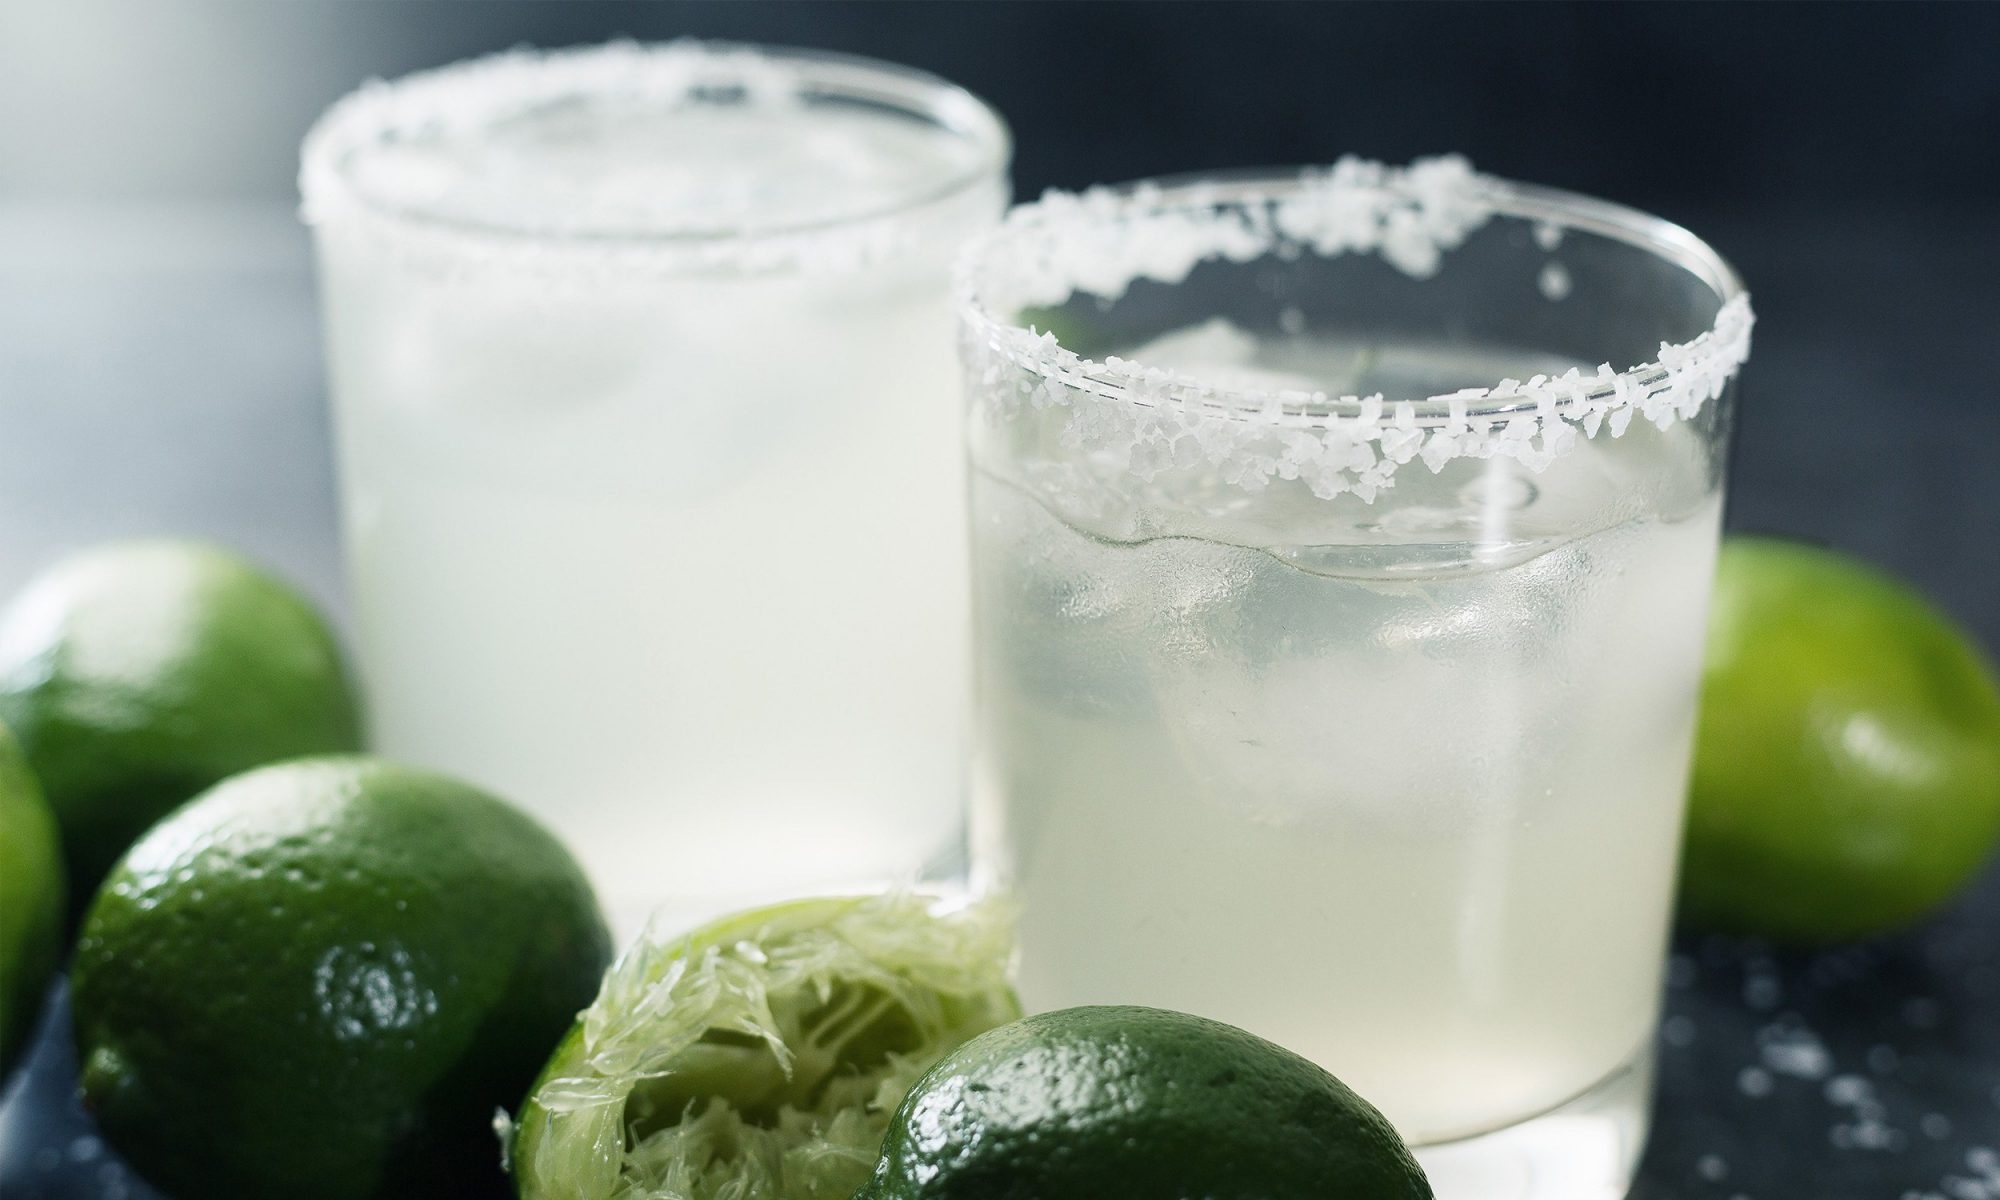 EC: Applebee's Employee Reveals Their $1 Margaritas Are Mostly Water